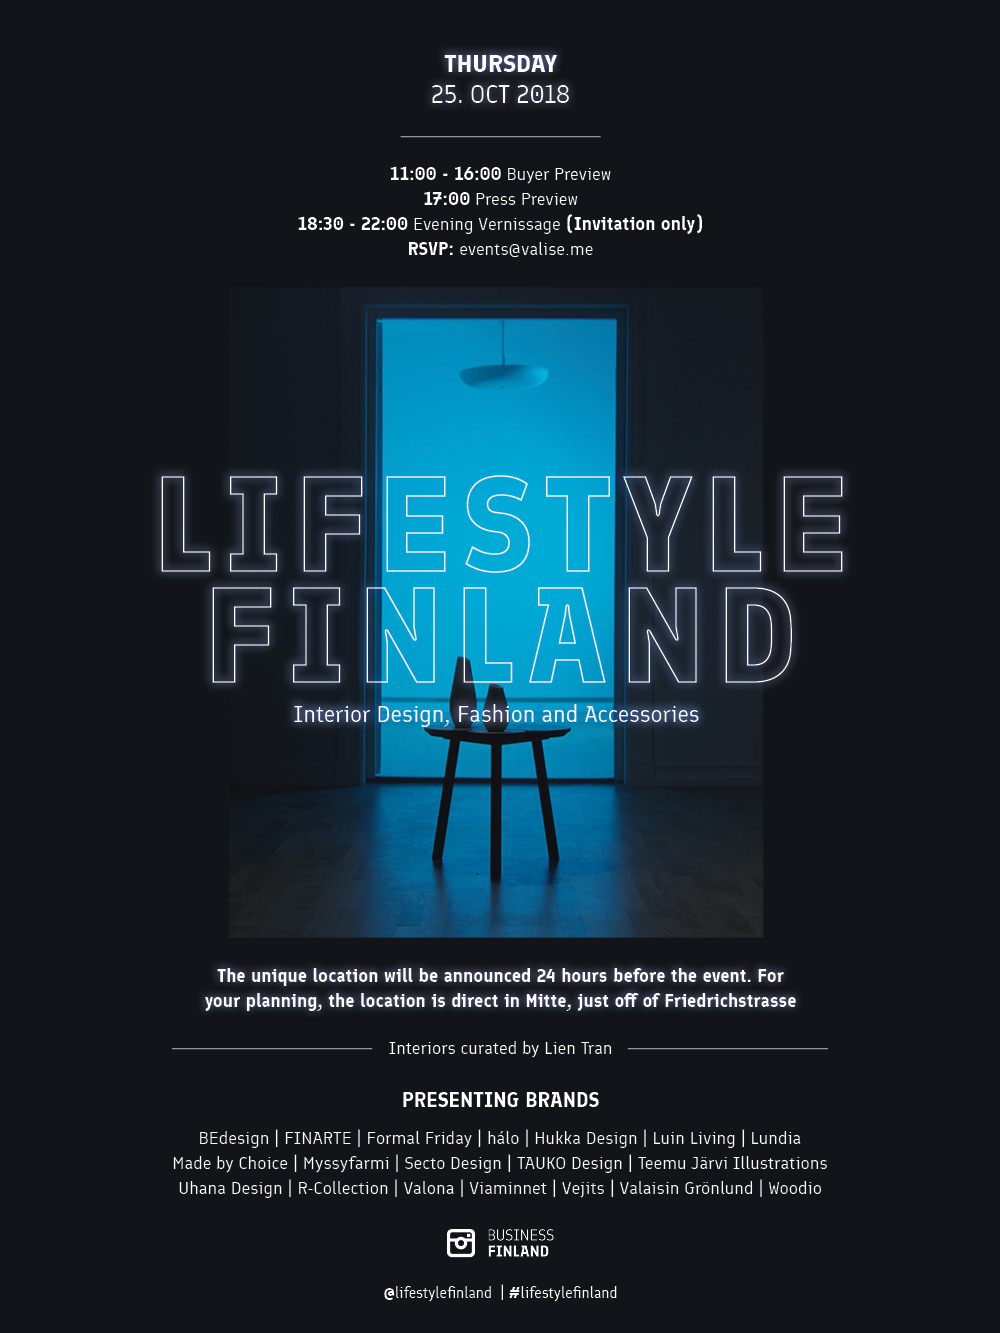 Lifestyle+Finland+Invite_Final+(USE+FOR+THE+INVITES) (1).jpg